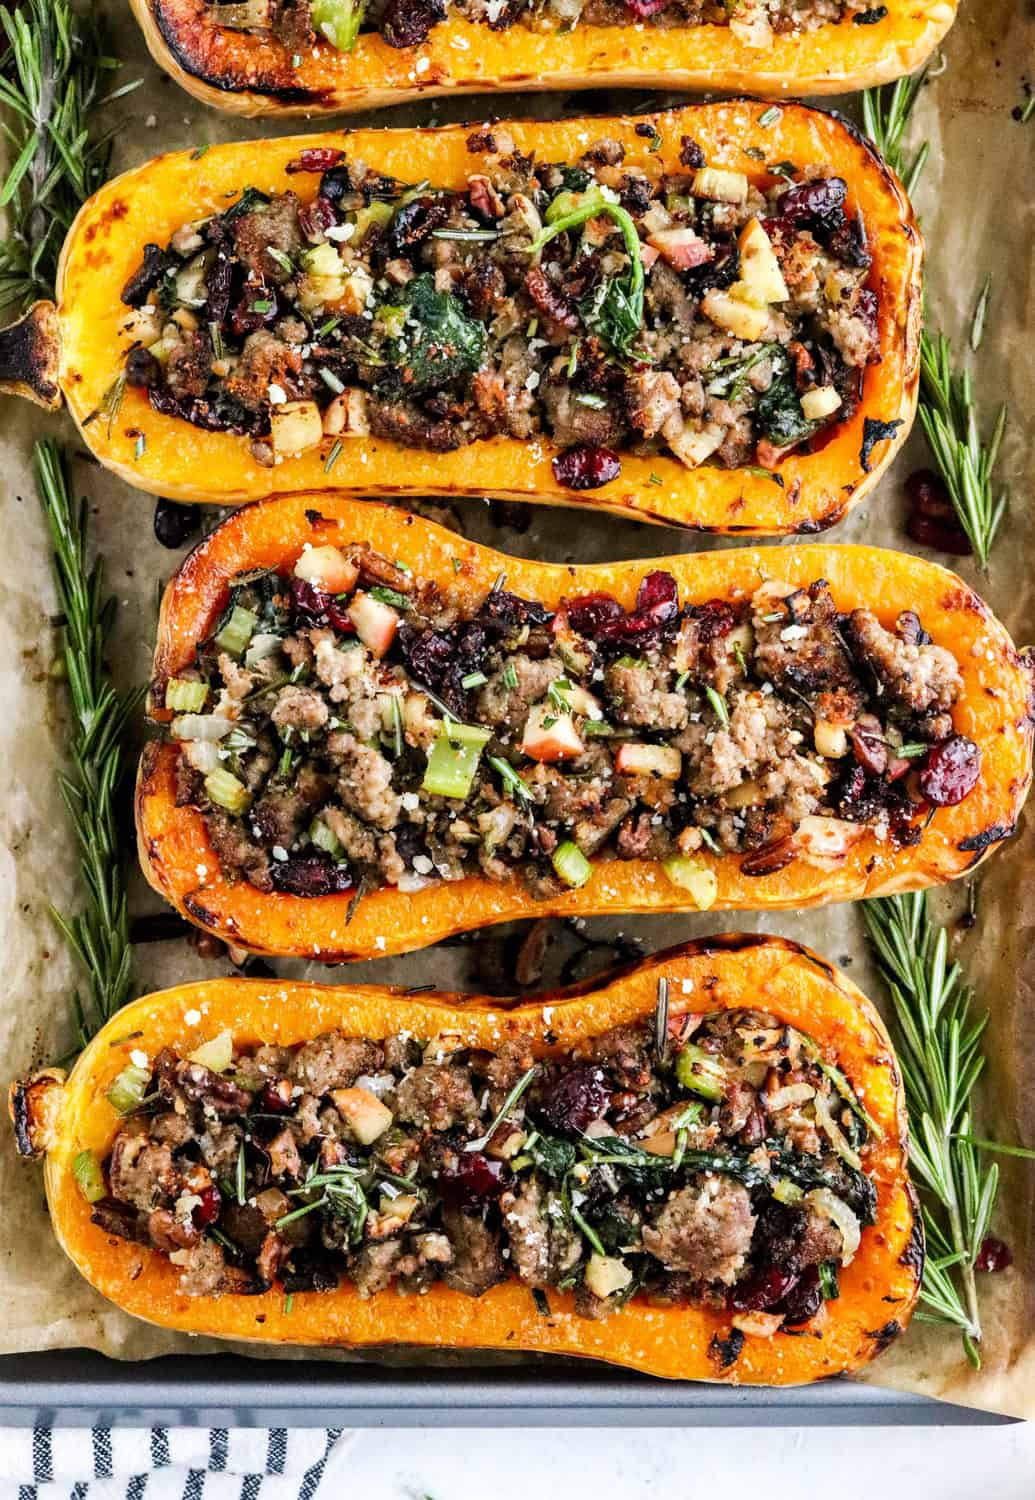 4 stuffed butternut squash halves filled with sausage, apples an fresh herbs on a baking sheet on top of brown parchment paper.